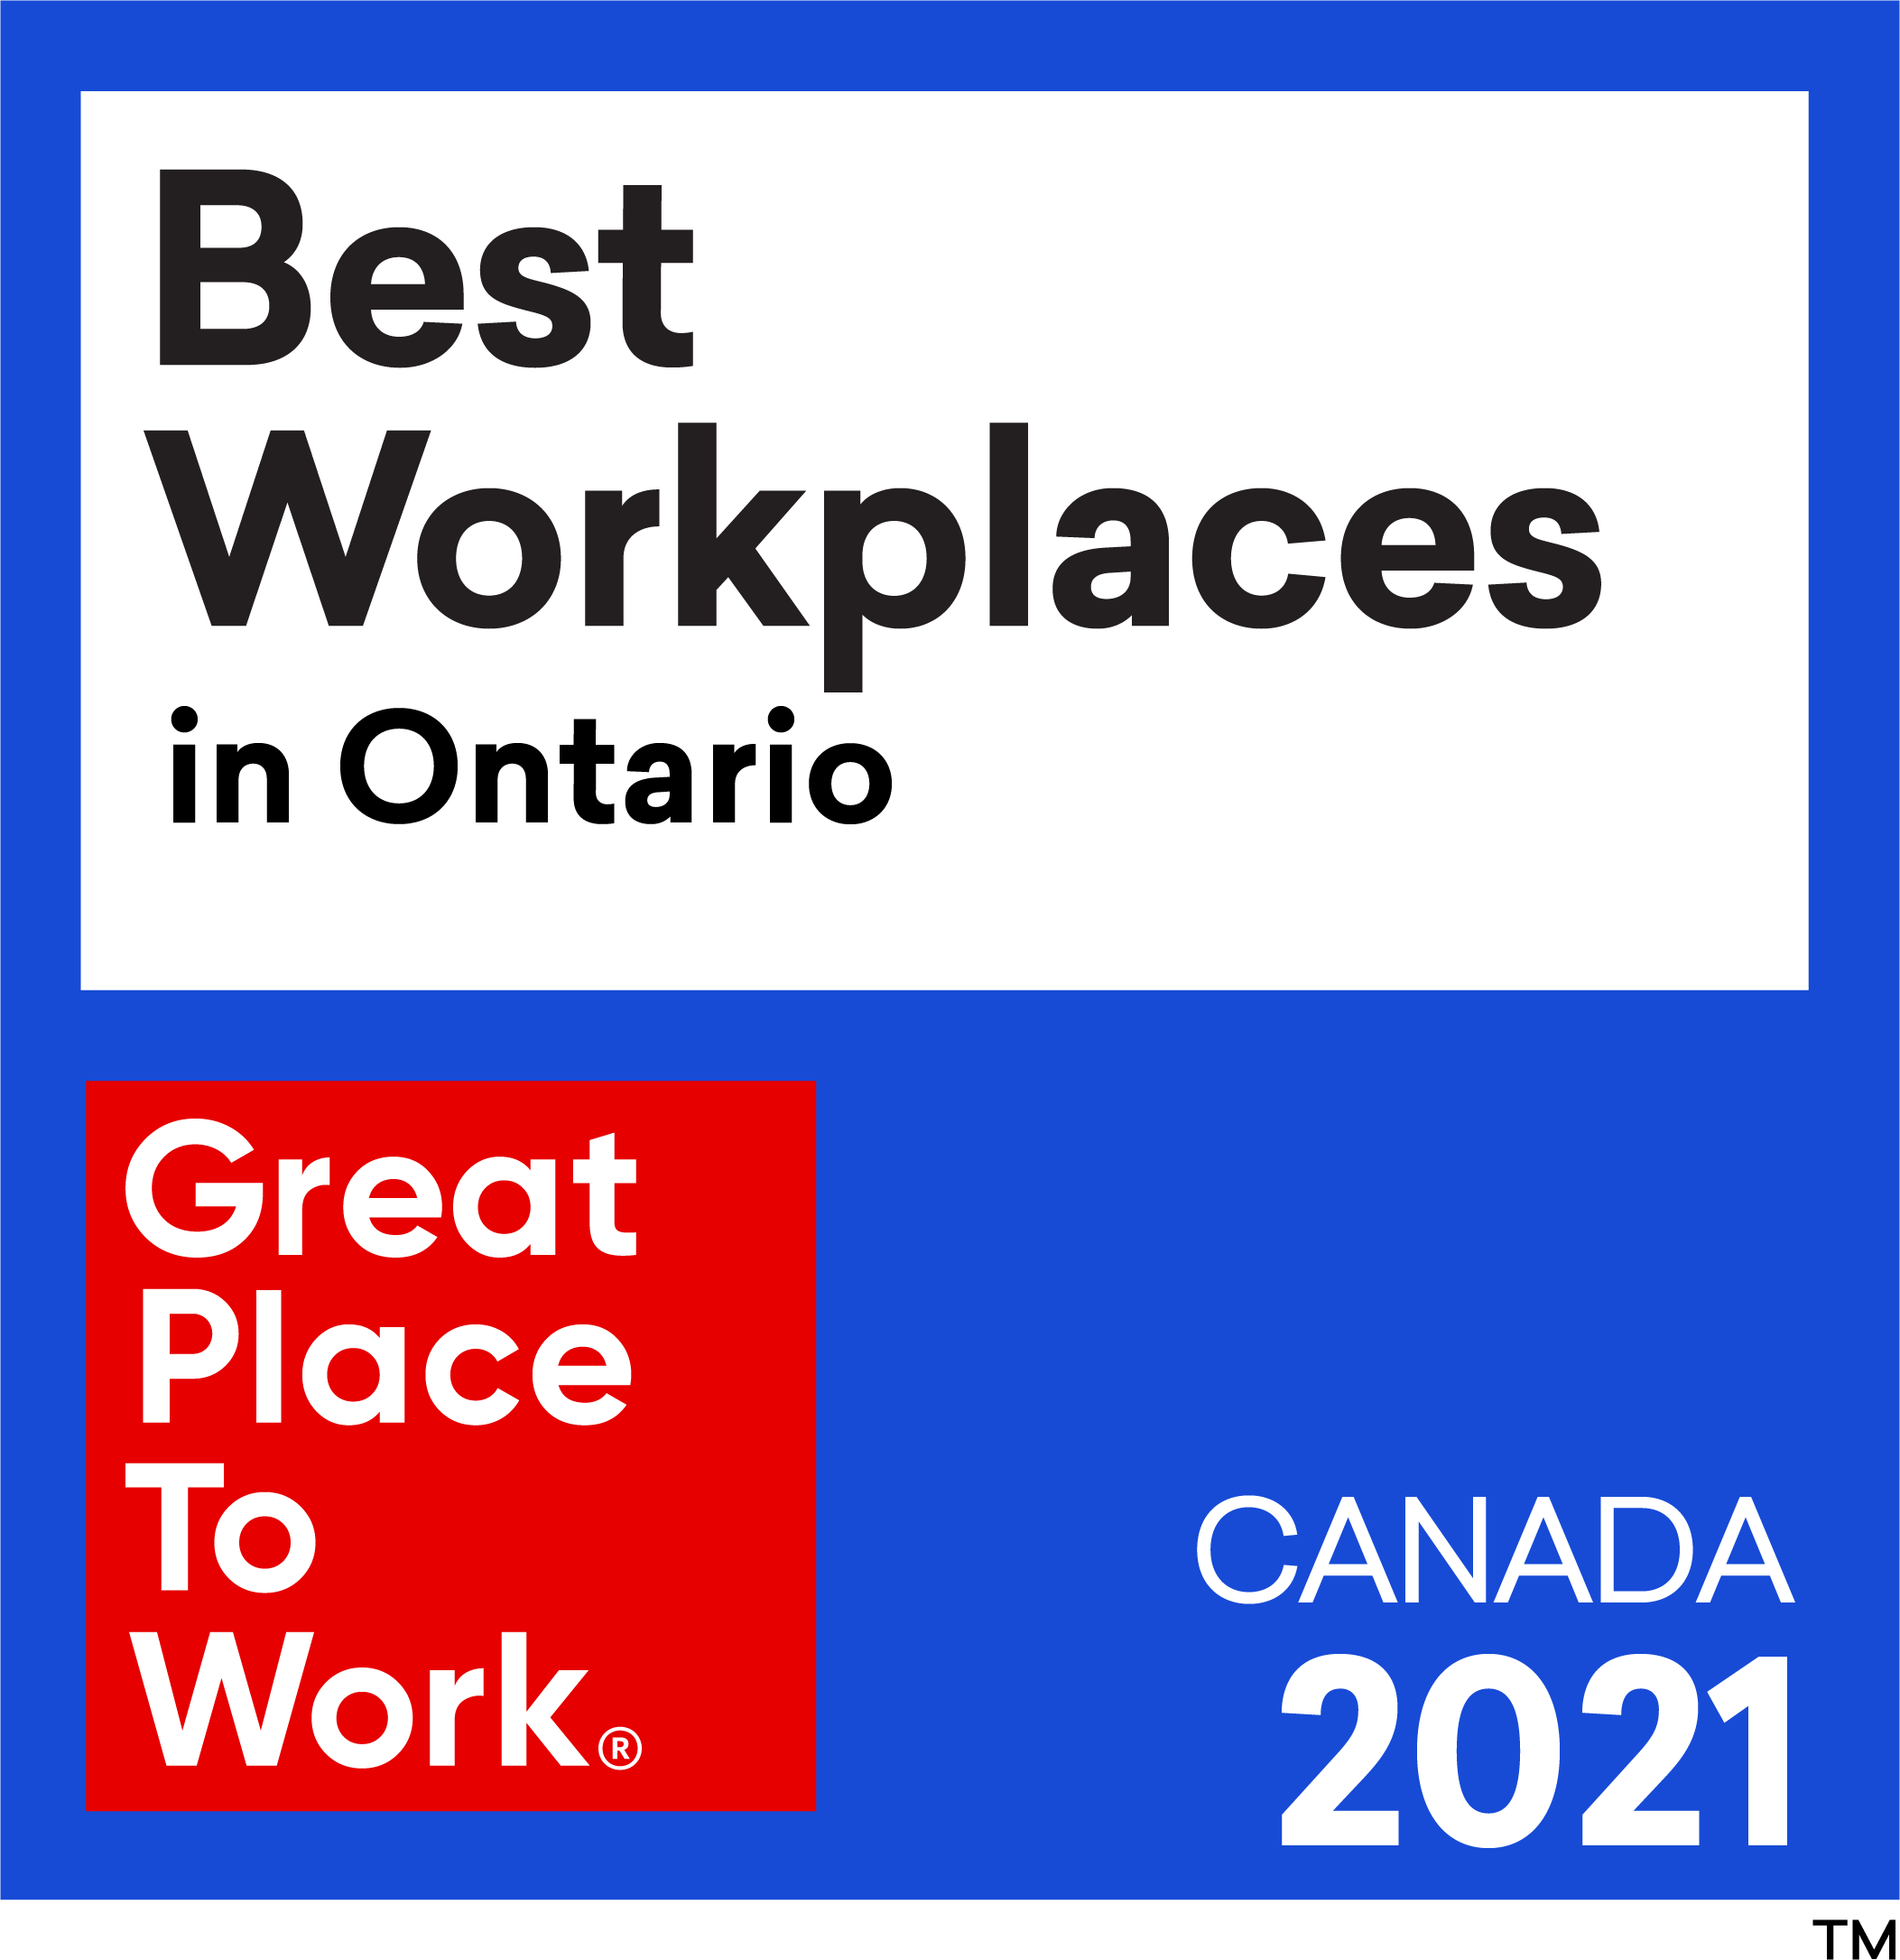 Best Workplaces in Ontario - Great Place To Work - Canada 2021